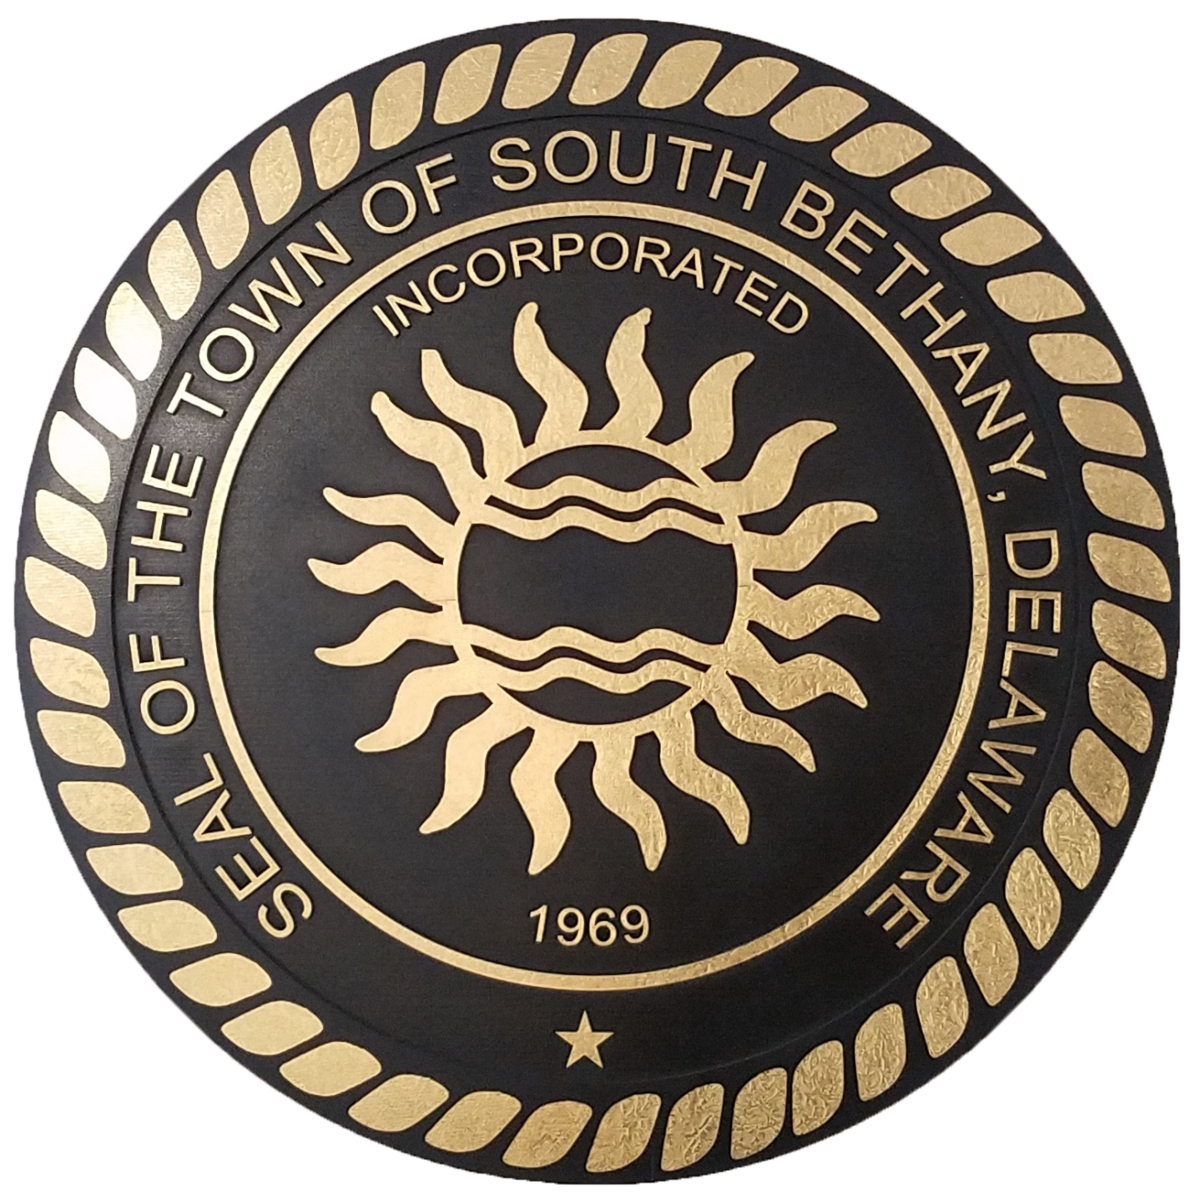 Seal of the Town of South Bethany, Delaware